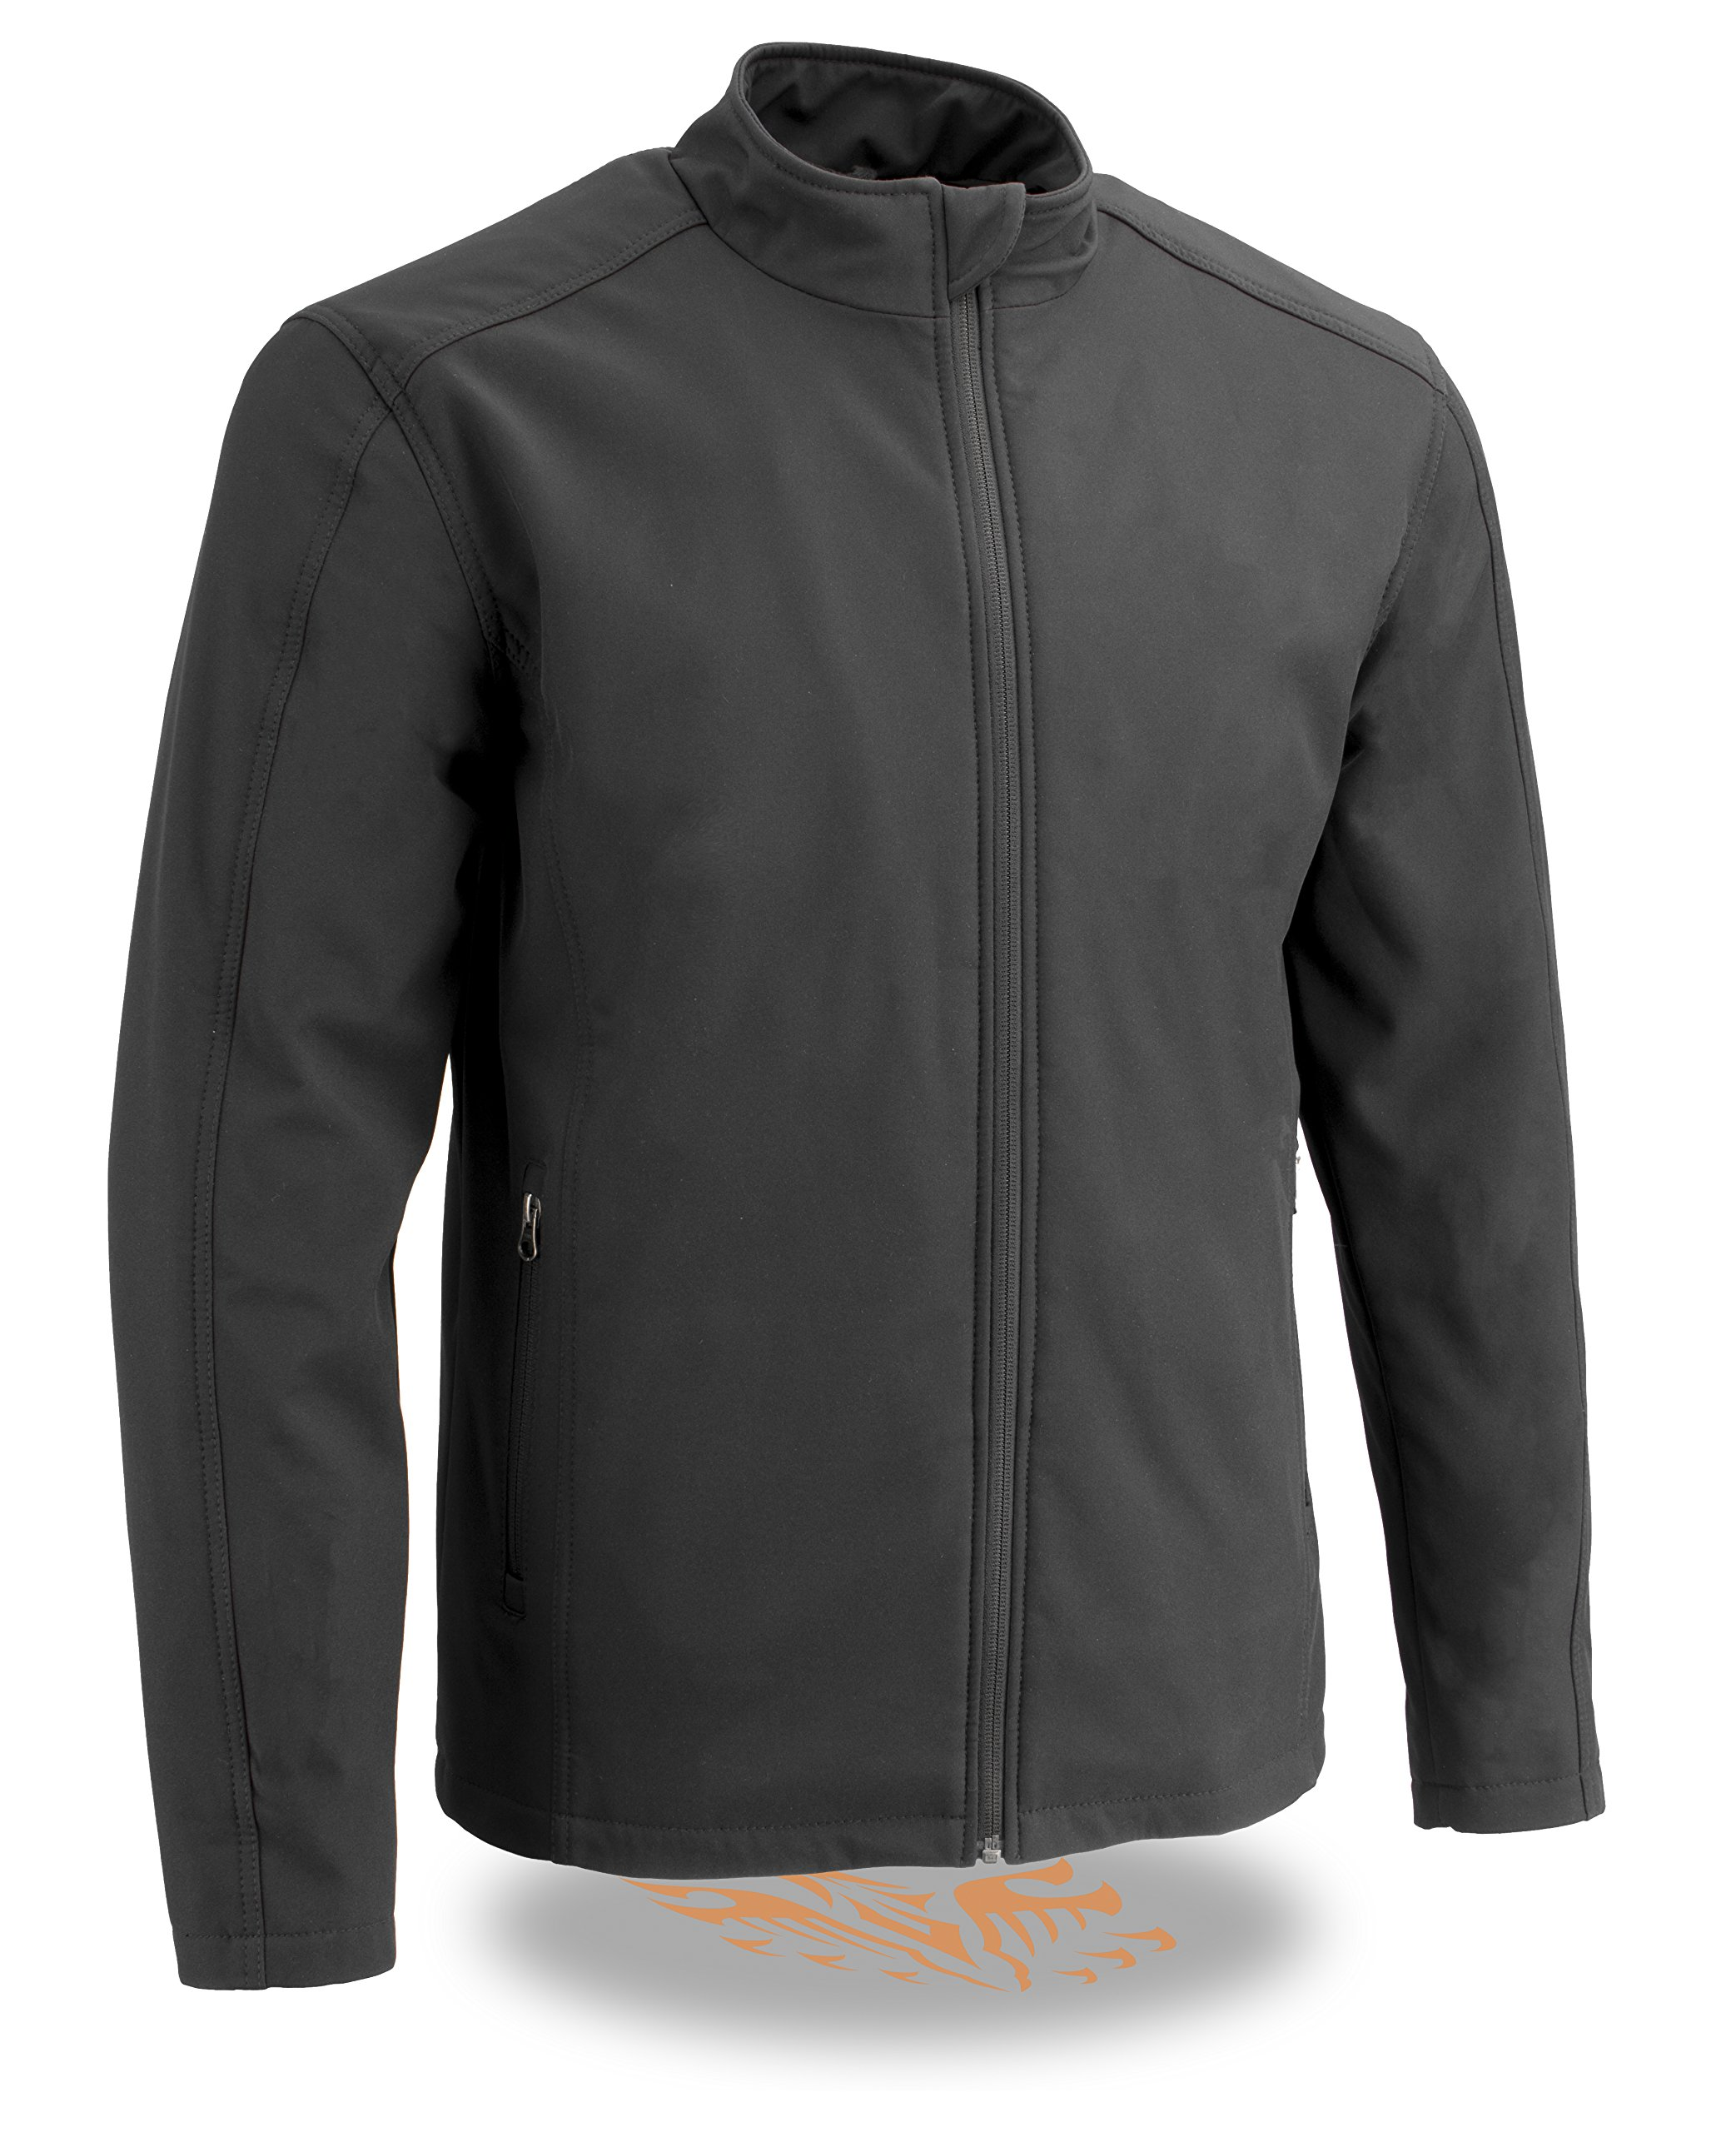 Milwaukee Performance Men's Waterproof Lightweight Zipper Front Soft Shell Jacket (Black, 4X)